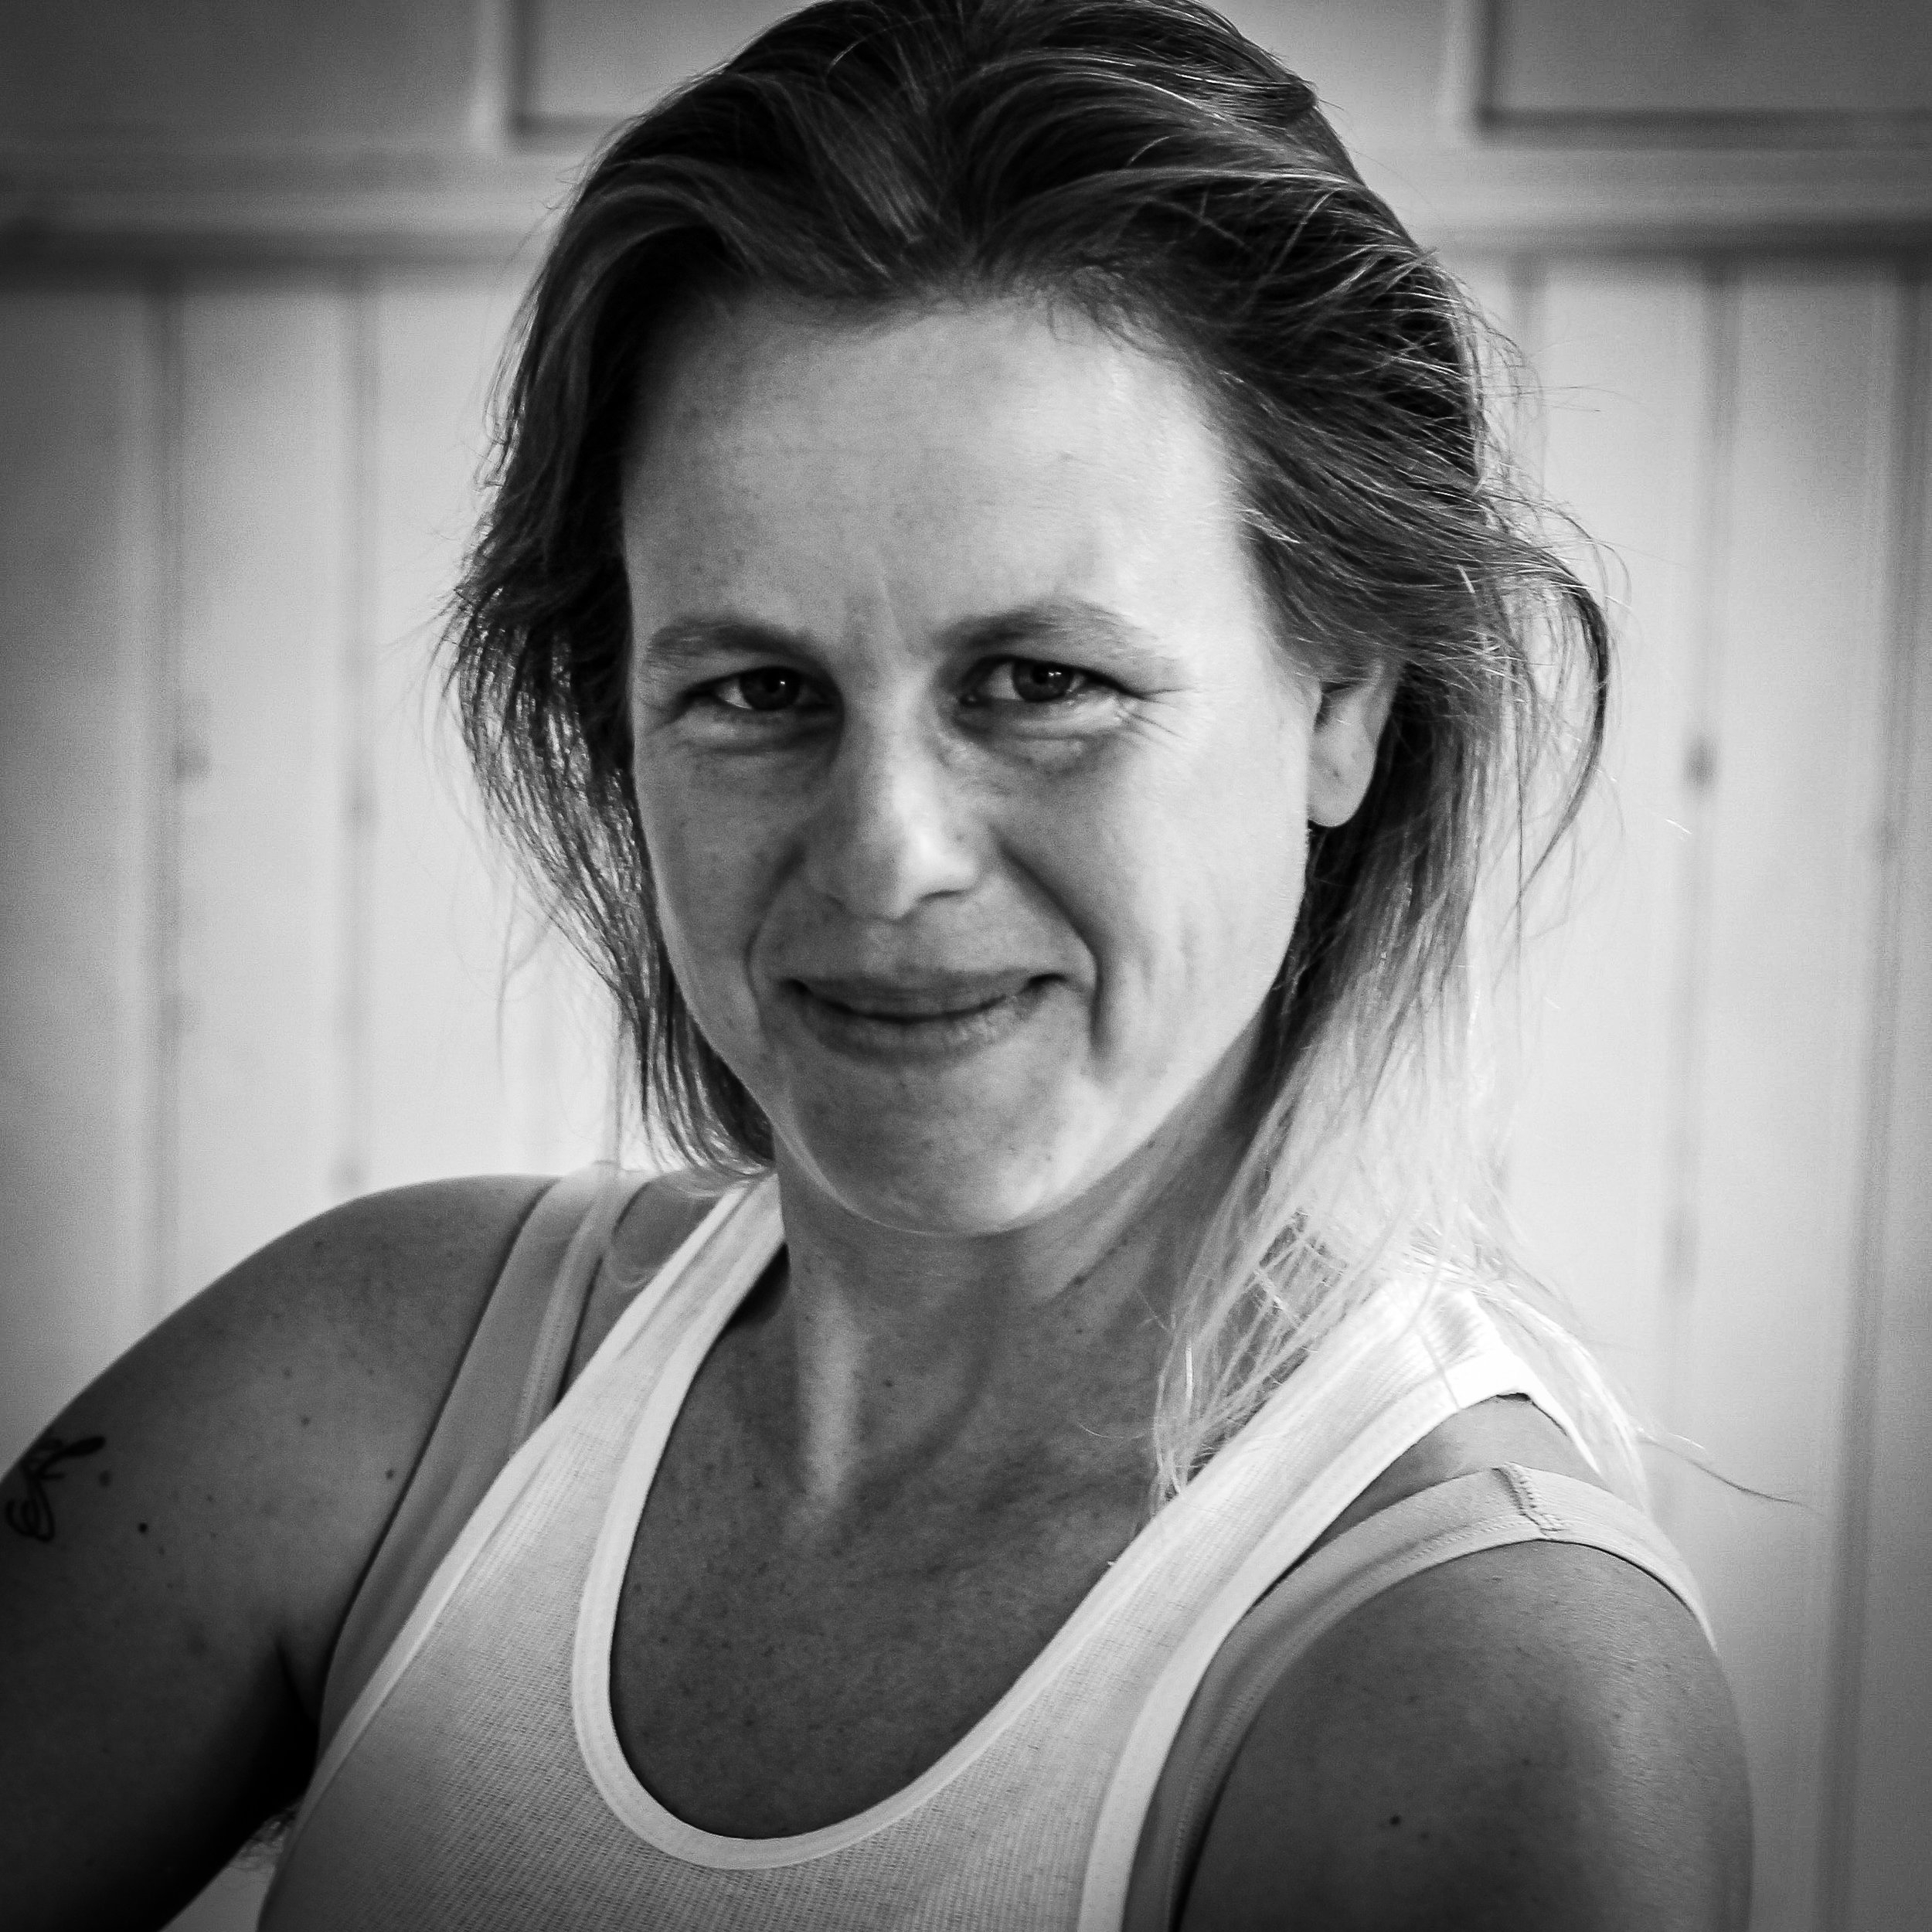 ZUZKA SABATA - Ensemble - ZUZKA is an actor, teacher, and community engager. She has performed with diverse companies, ranging from the CzechoSlovak-American Marionnette Theatre Co. in NYC to Woman's Will in San Francisco, and is a founding member of Banana, Bag, & Bodice.She has been on faculty at Dell'Arte International and a company member since 2010, with featured roles in Mary Jane: the Musical and Korbel V, among others, and is a regular performer at the Synapsis Collective monthly cabarets in Eureka, Ca. Zuzka is lead artist on Dell'Arte's multi-year collaboration with the Wiyot Tribe and co-founder of the Dell'Arte Prison Project.